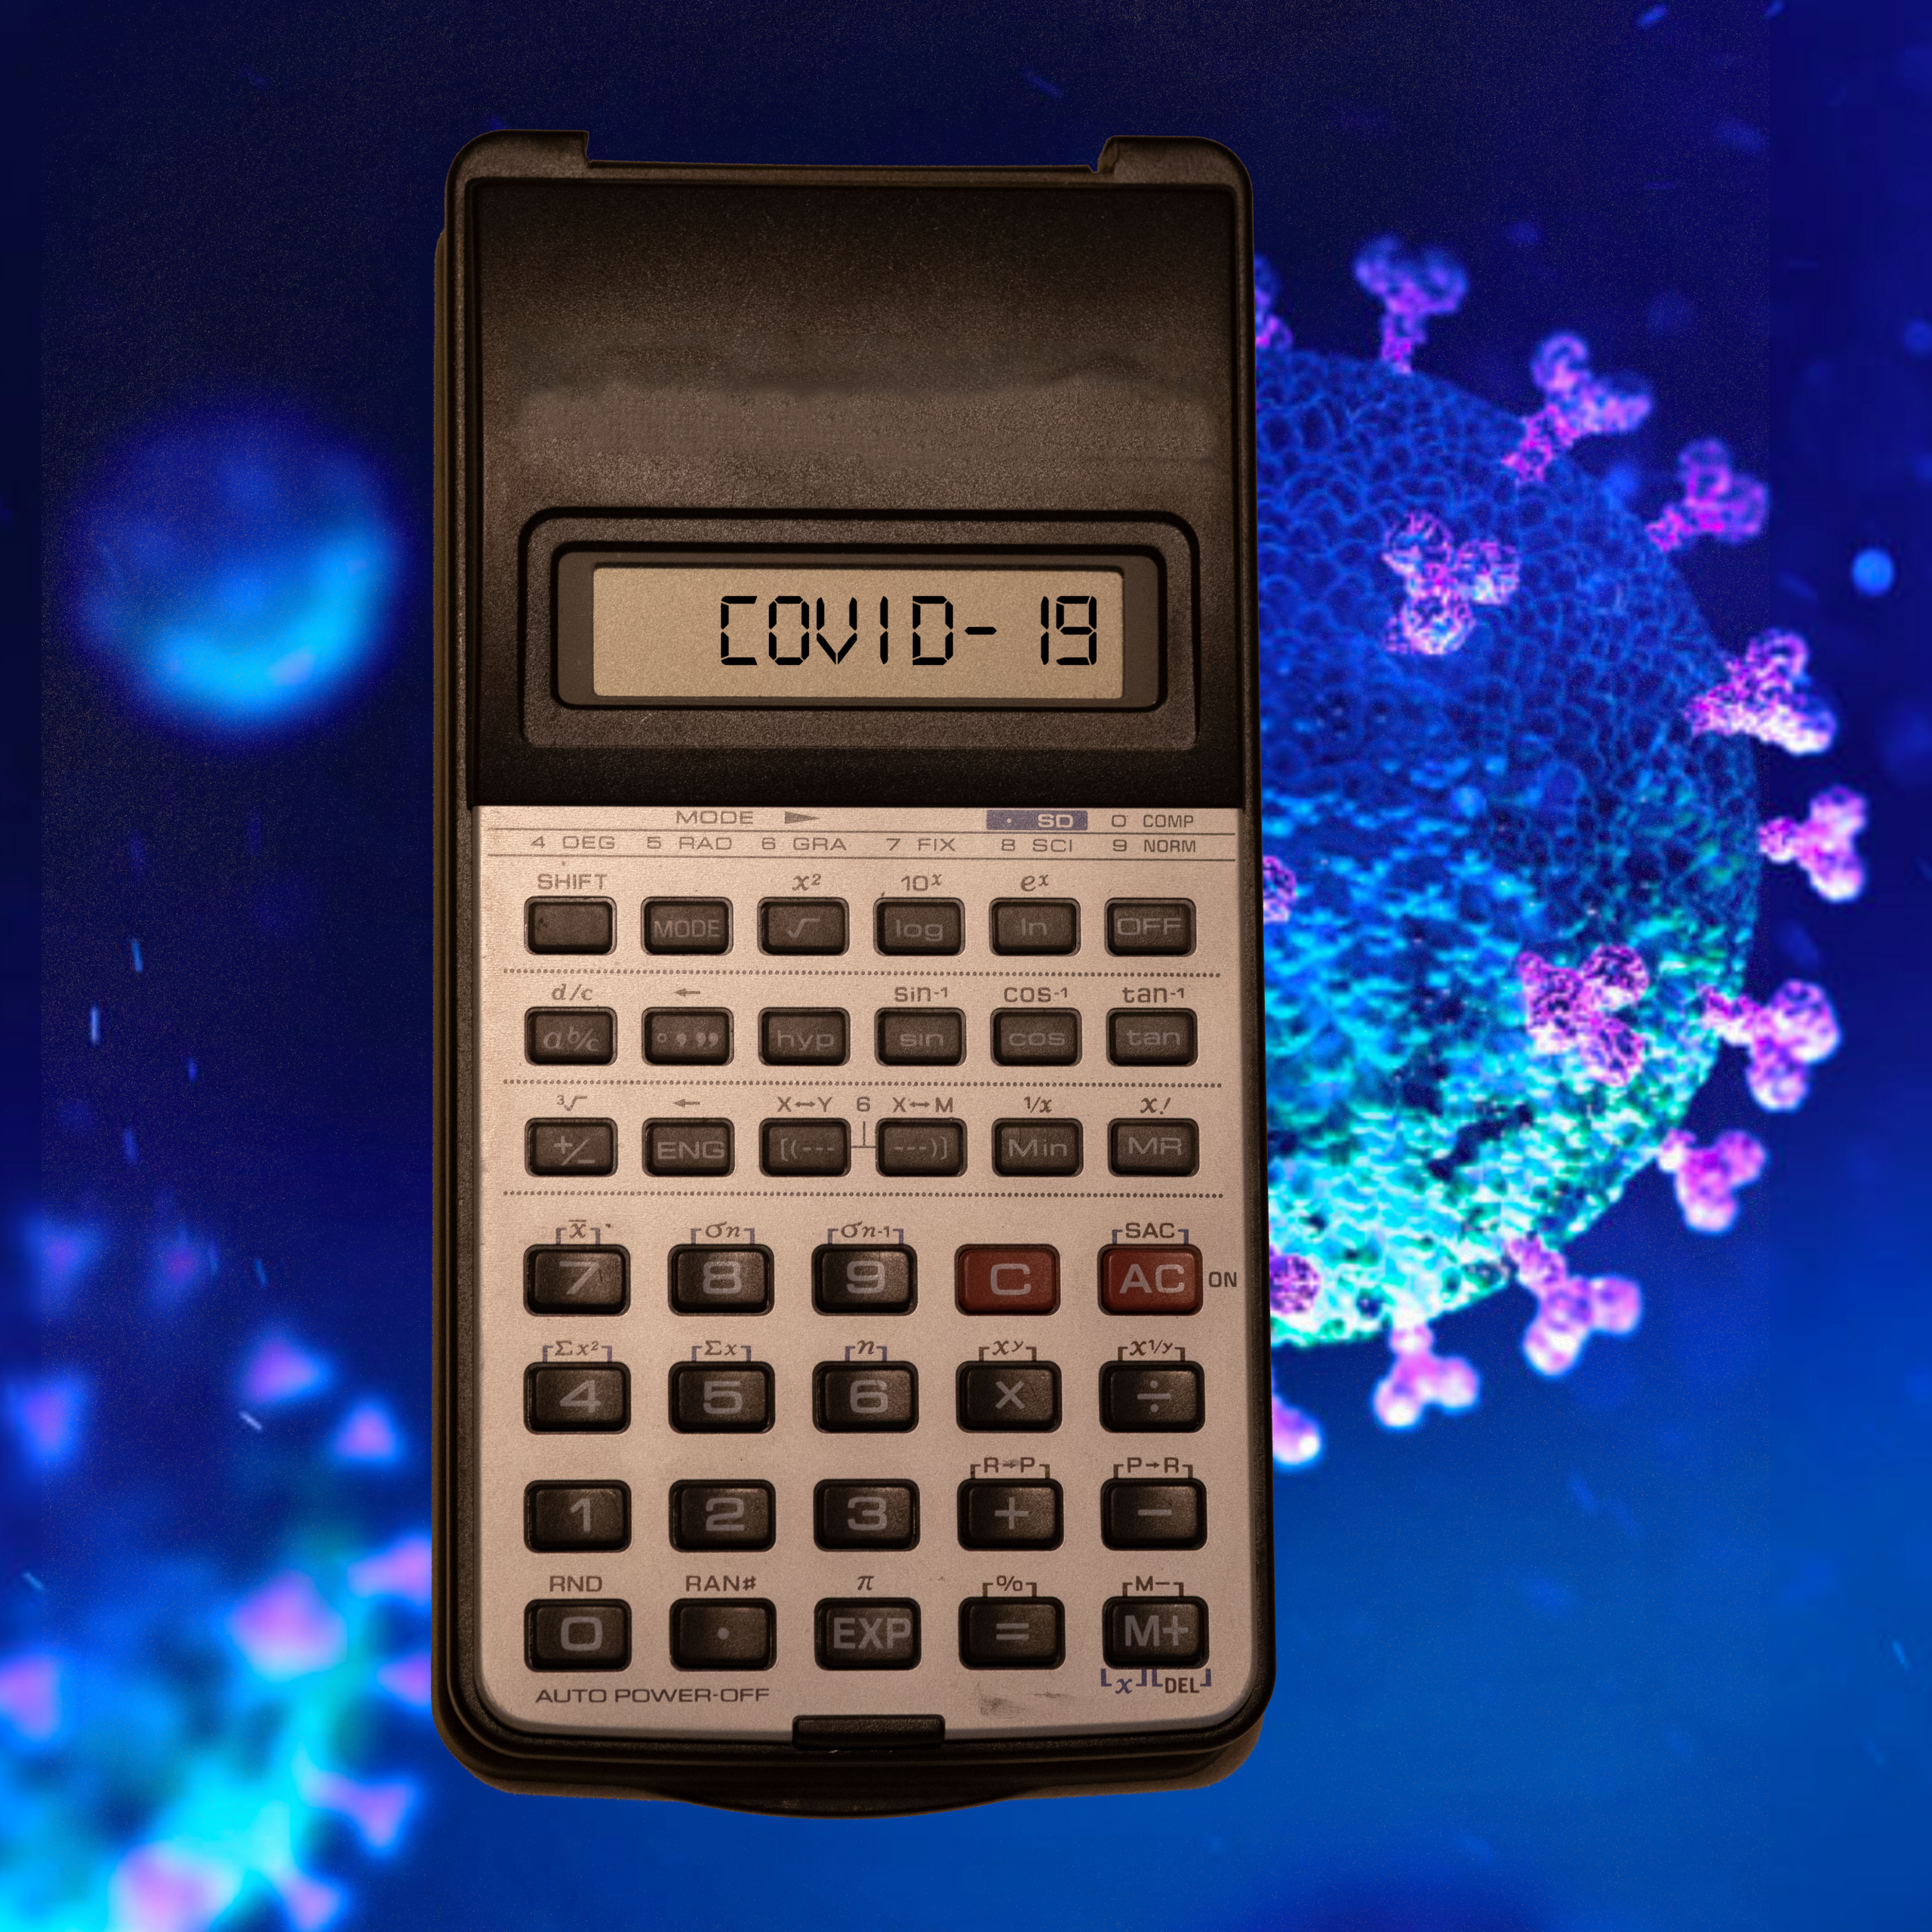 Calculating the cost of Covid-19